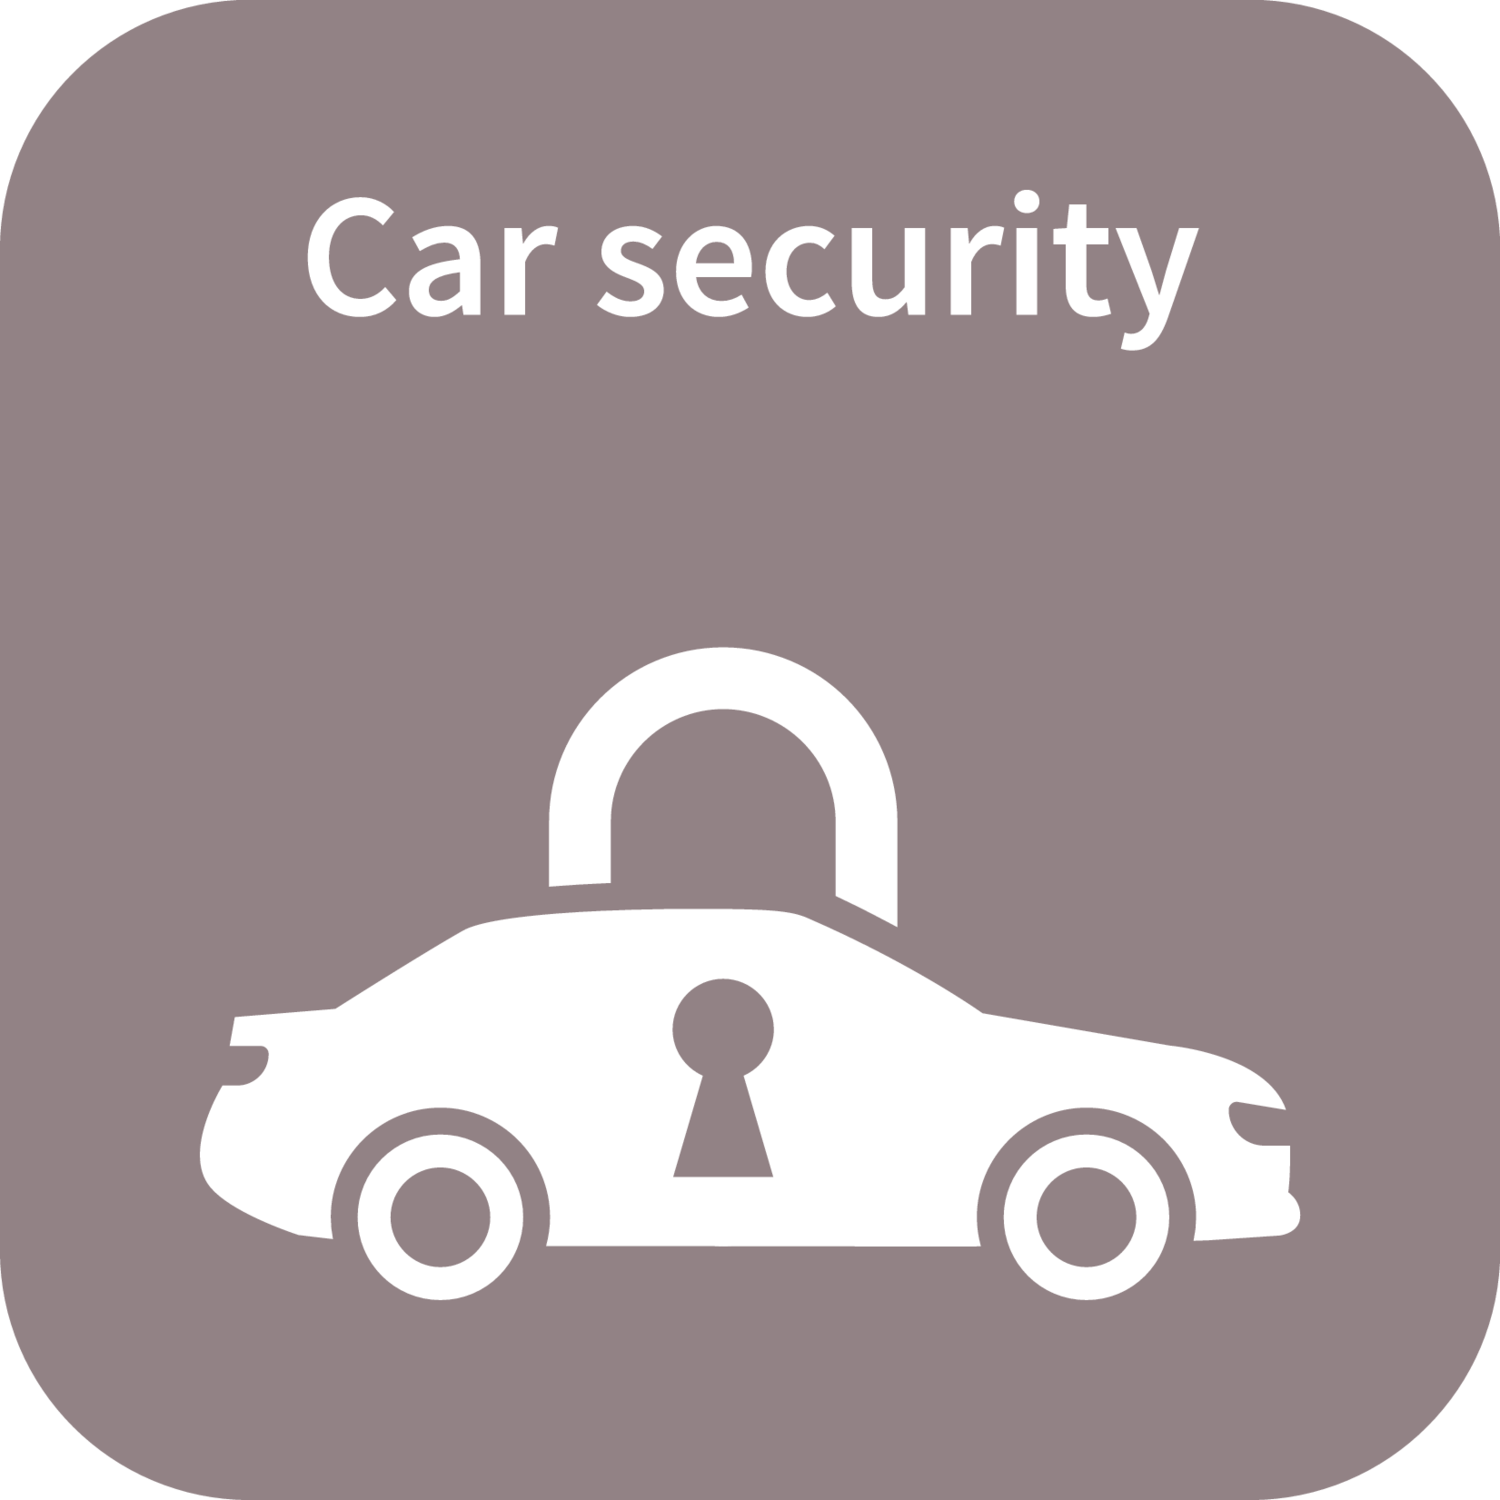 lowres-INFIN_Icon_CarSecurity_1-01.eps